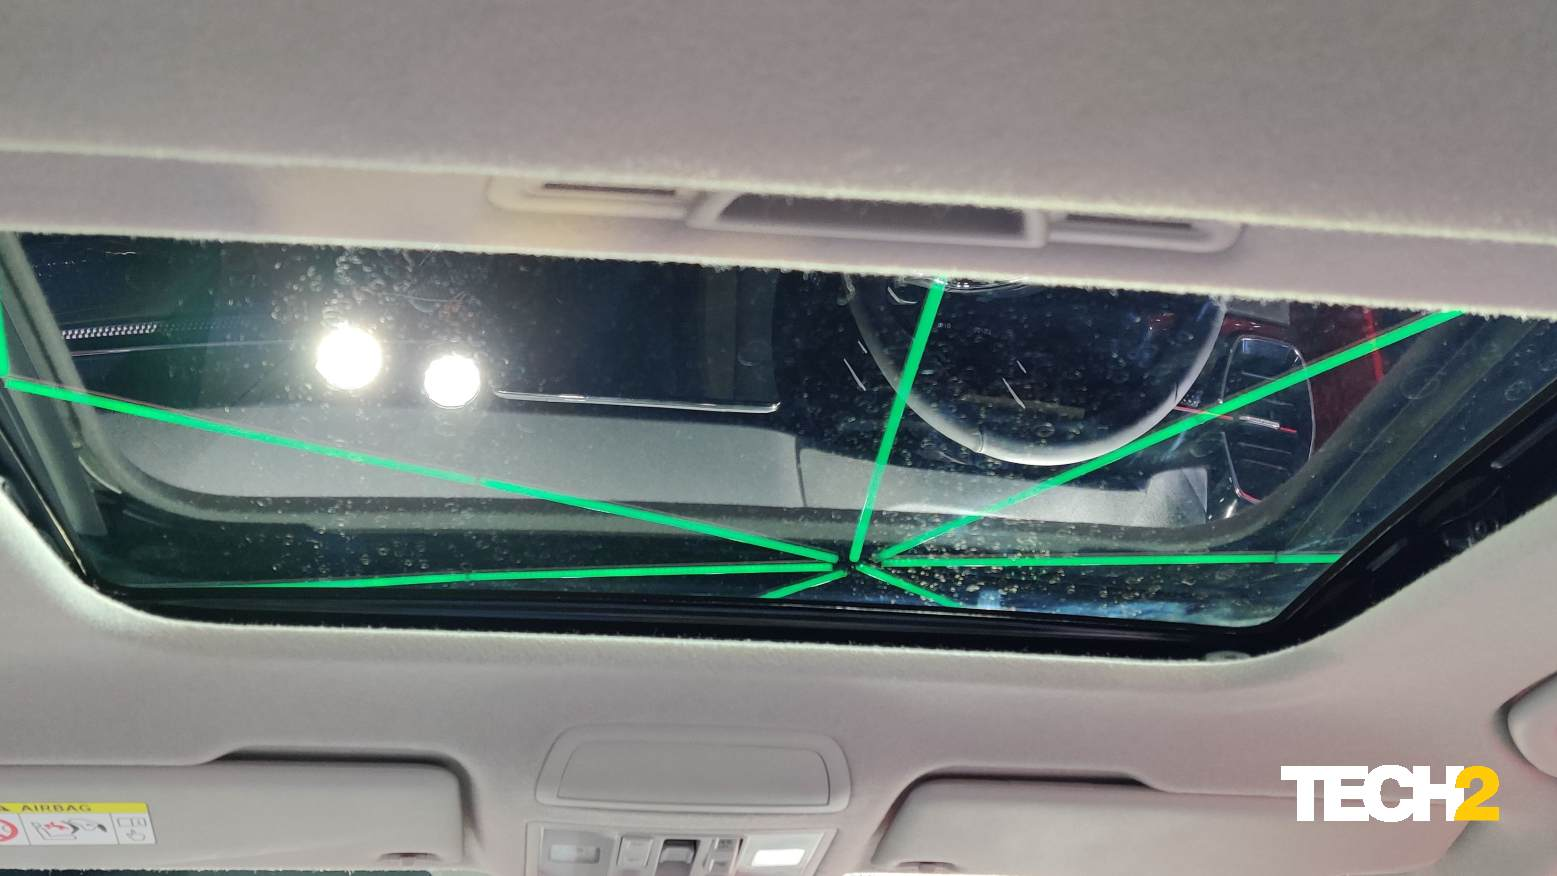 The Skoda Kushaq gets a standard-size electric sunroof, not a panoramic one. Image: Tech2/Amaan Ahmed